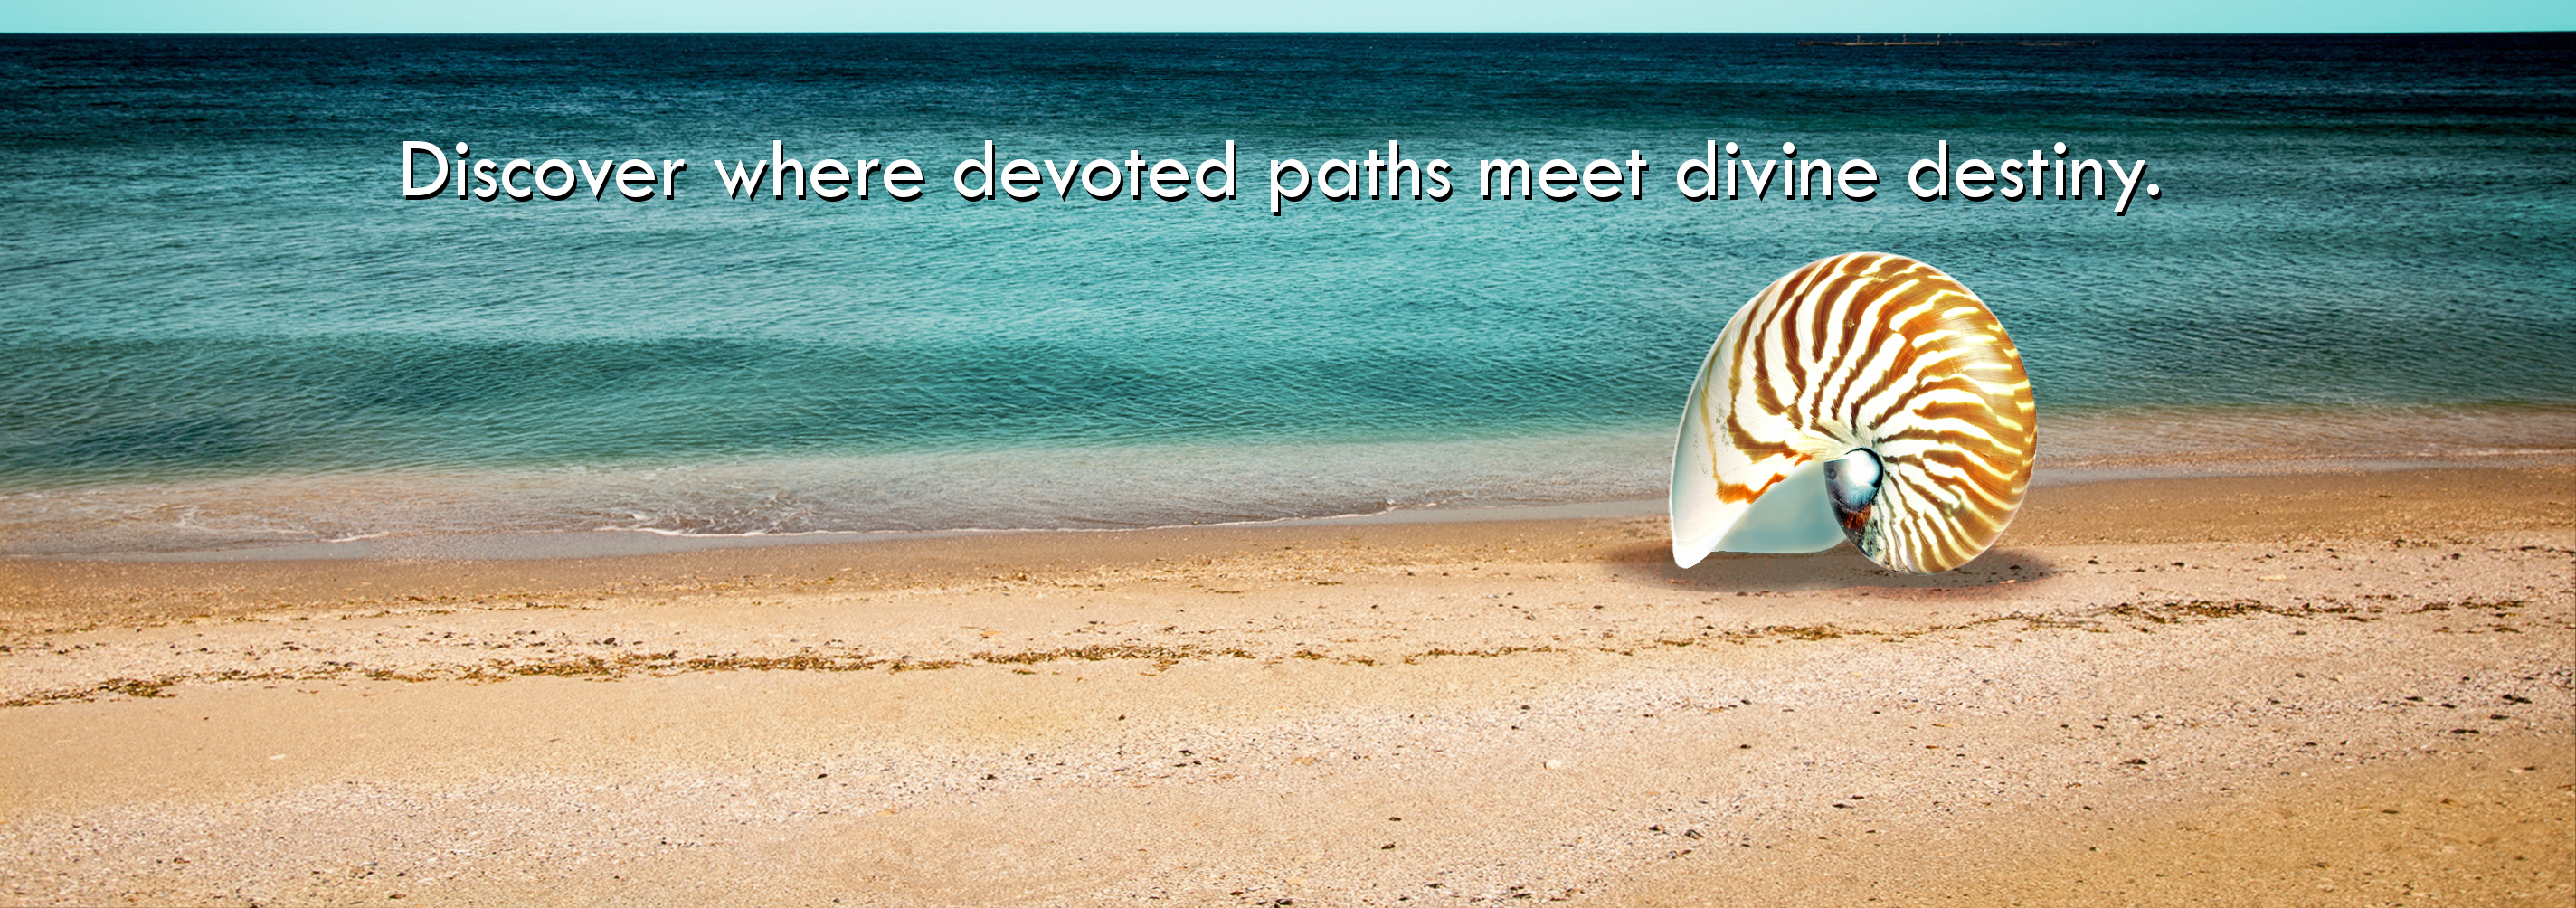 Divine Destiny & Devoted Paths | Uniquely created. Holistically Embraced. | Oceans Edge Ministry Lifestyle Book | Christian Biblical Program and Manual